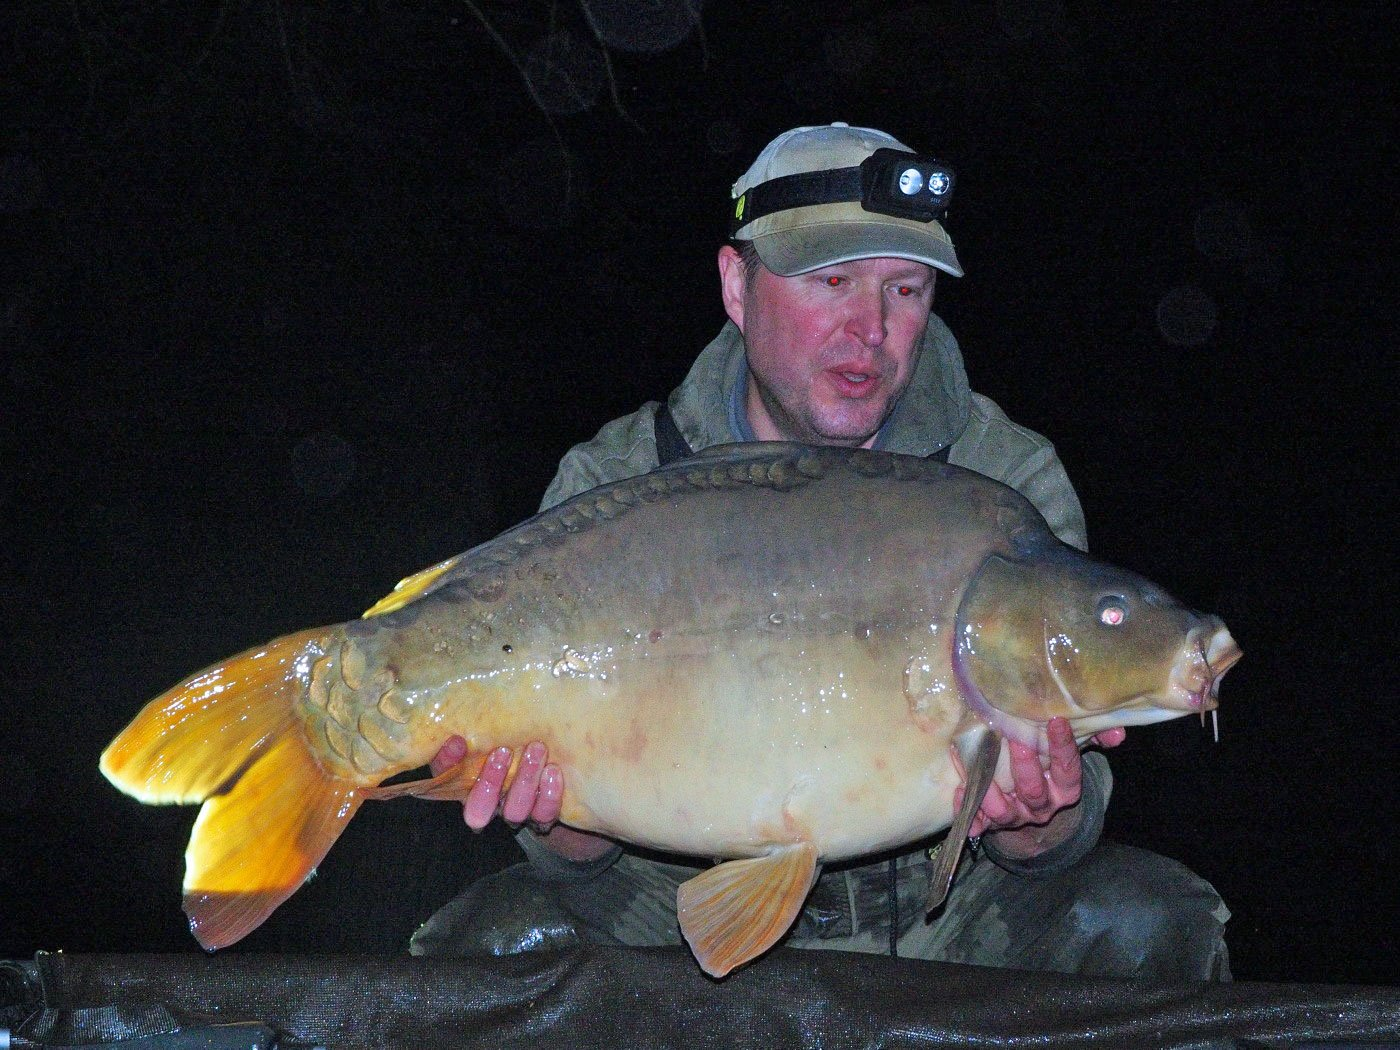 Matt with Batman at 32lbs 4oz